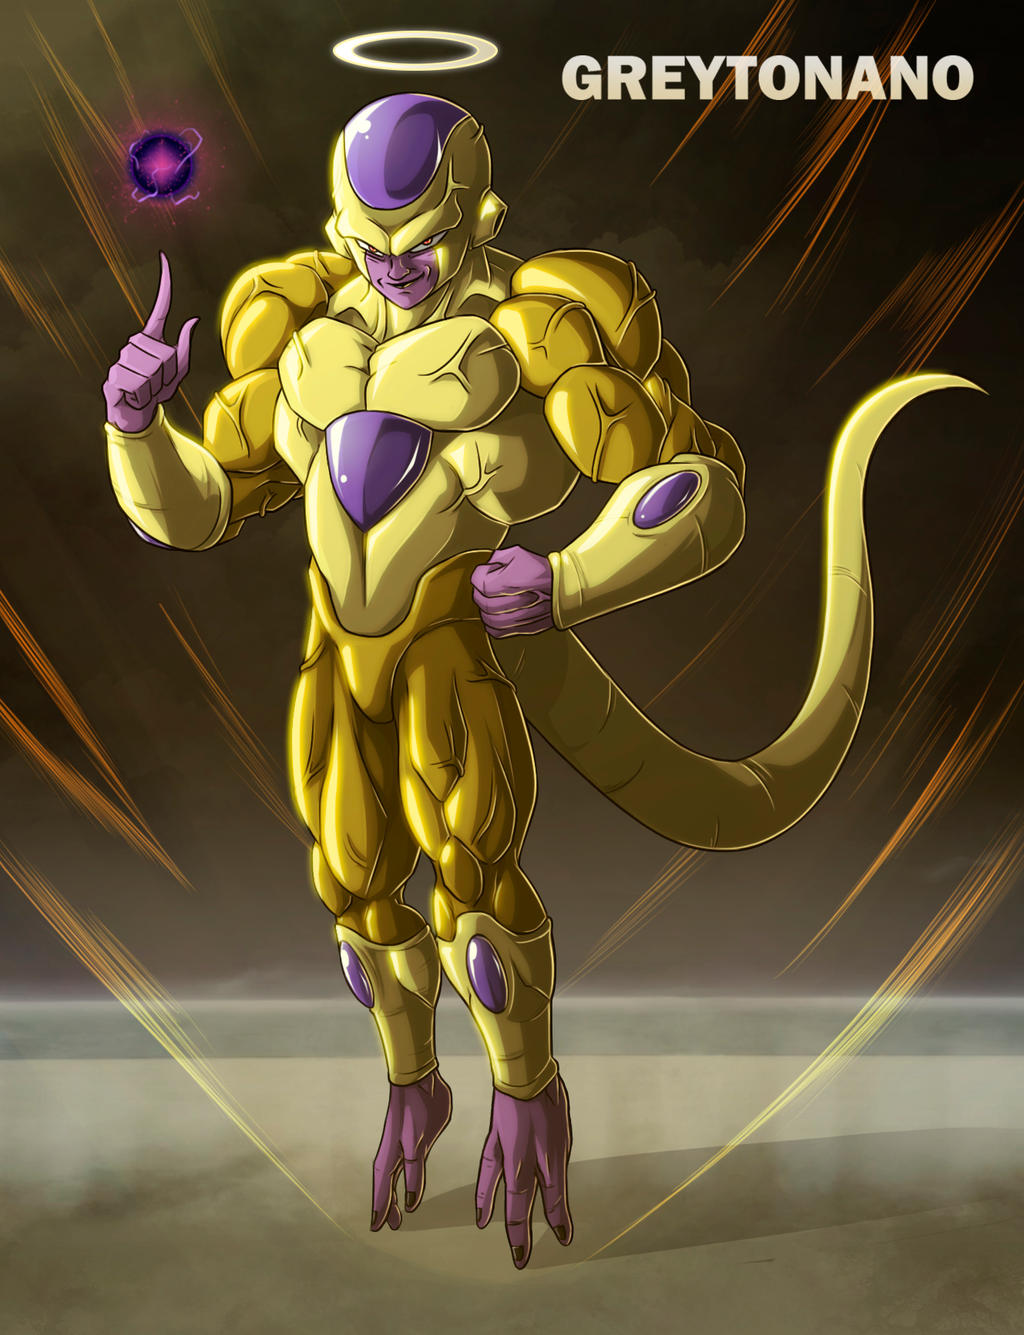 Full Power Golden Frieza V2 by greytonano on DeviantArt